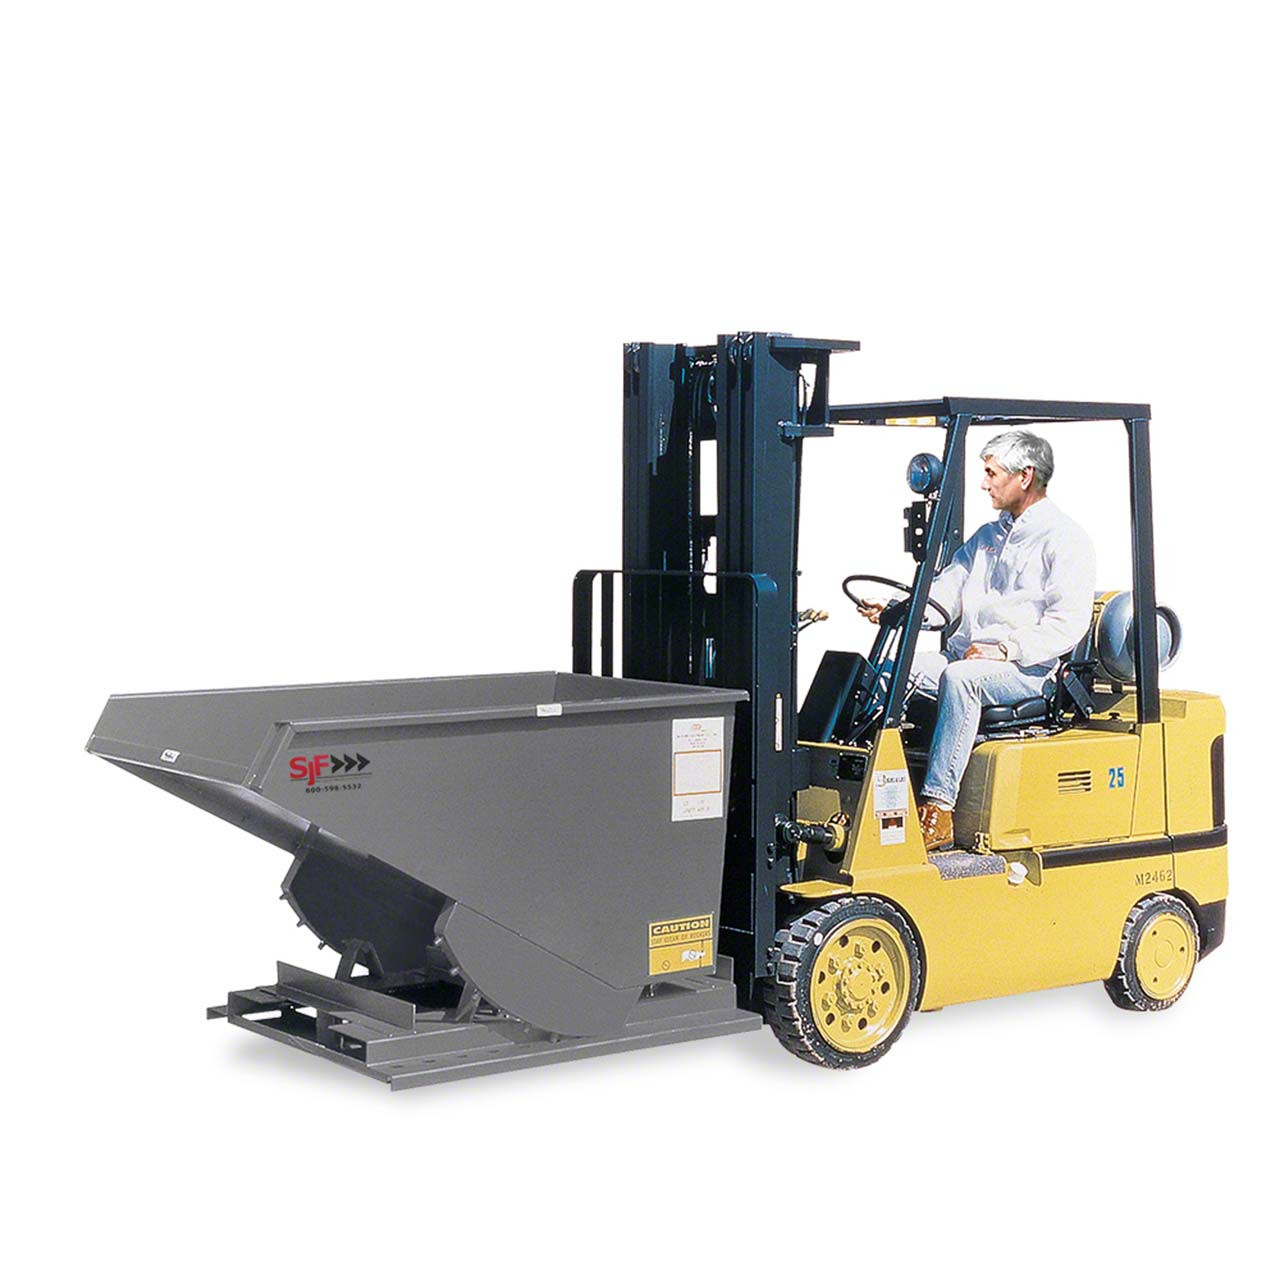 Dumping the Heavy Duty Self-Dumping Hopper from a Forklift